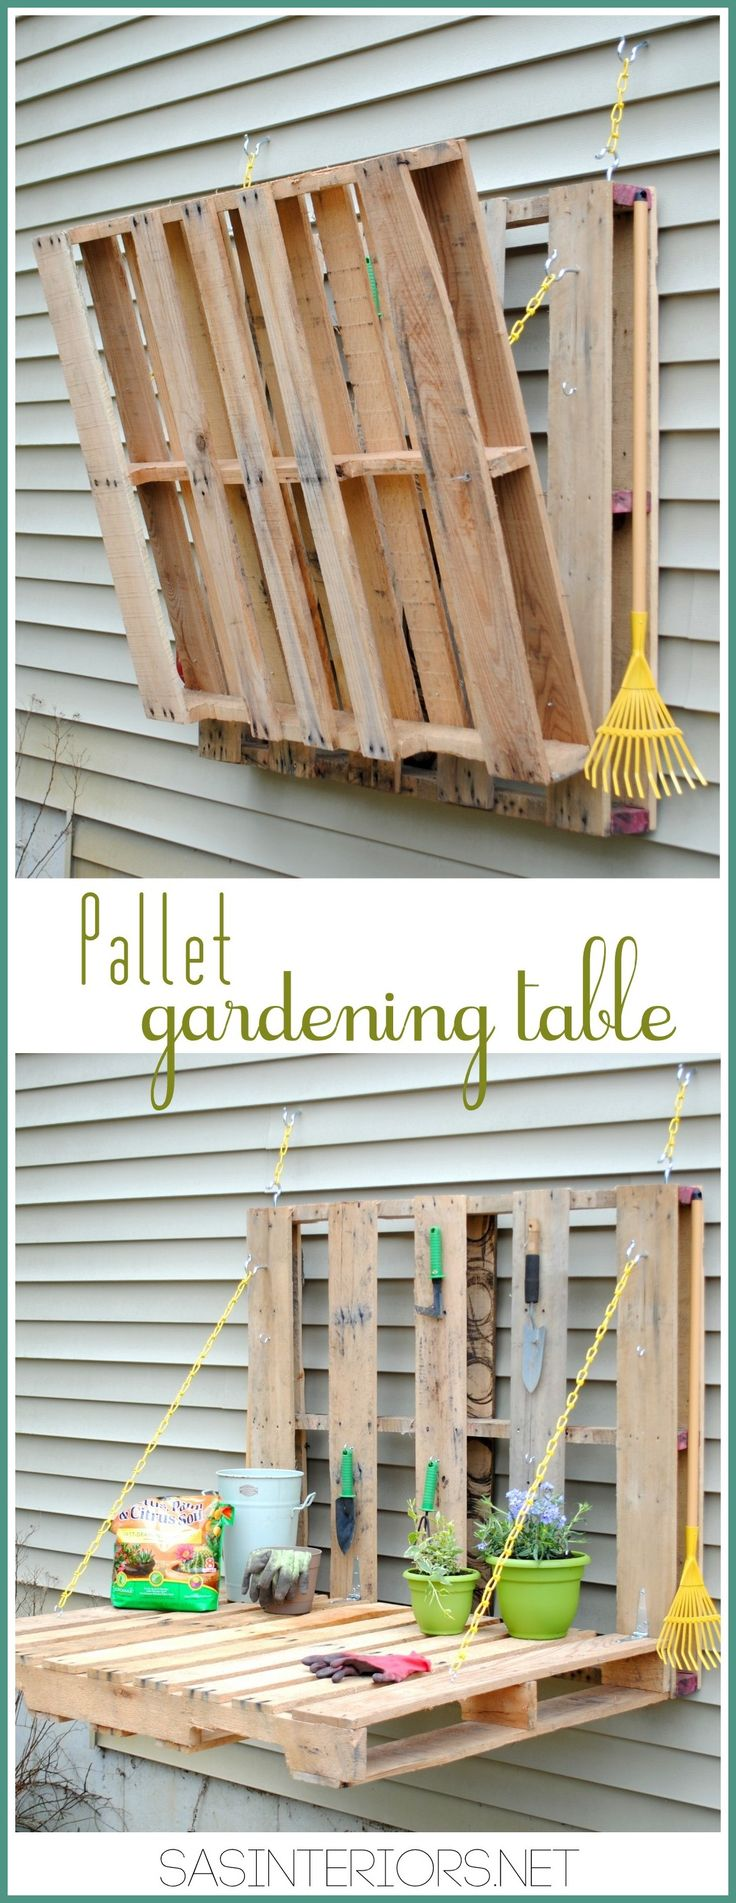 pallet gardening table...diy